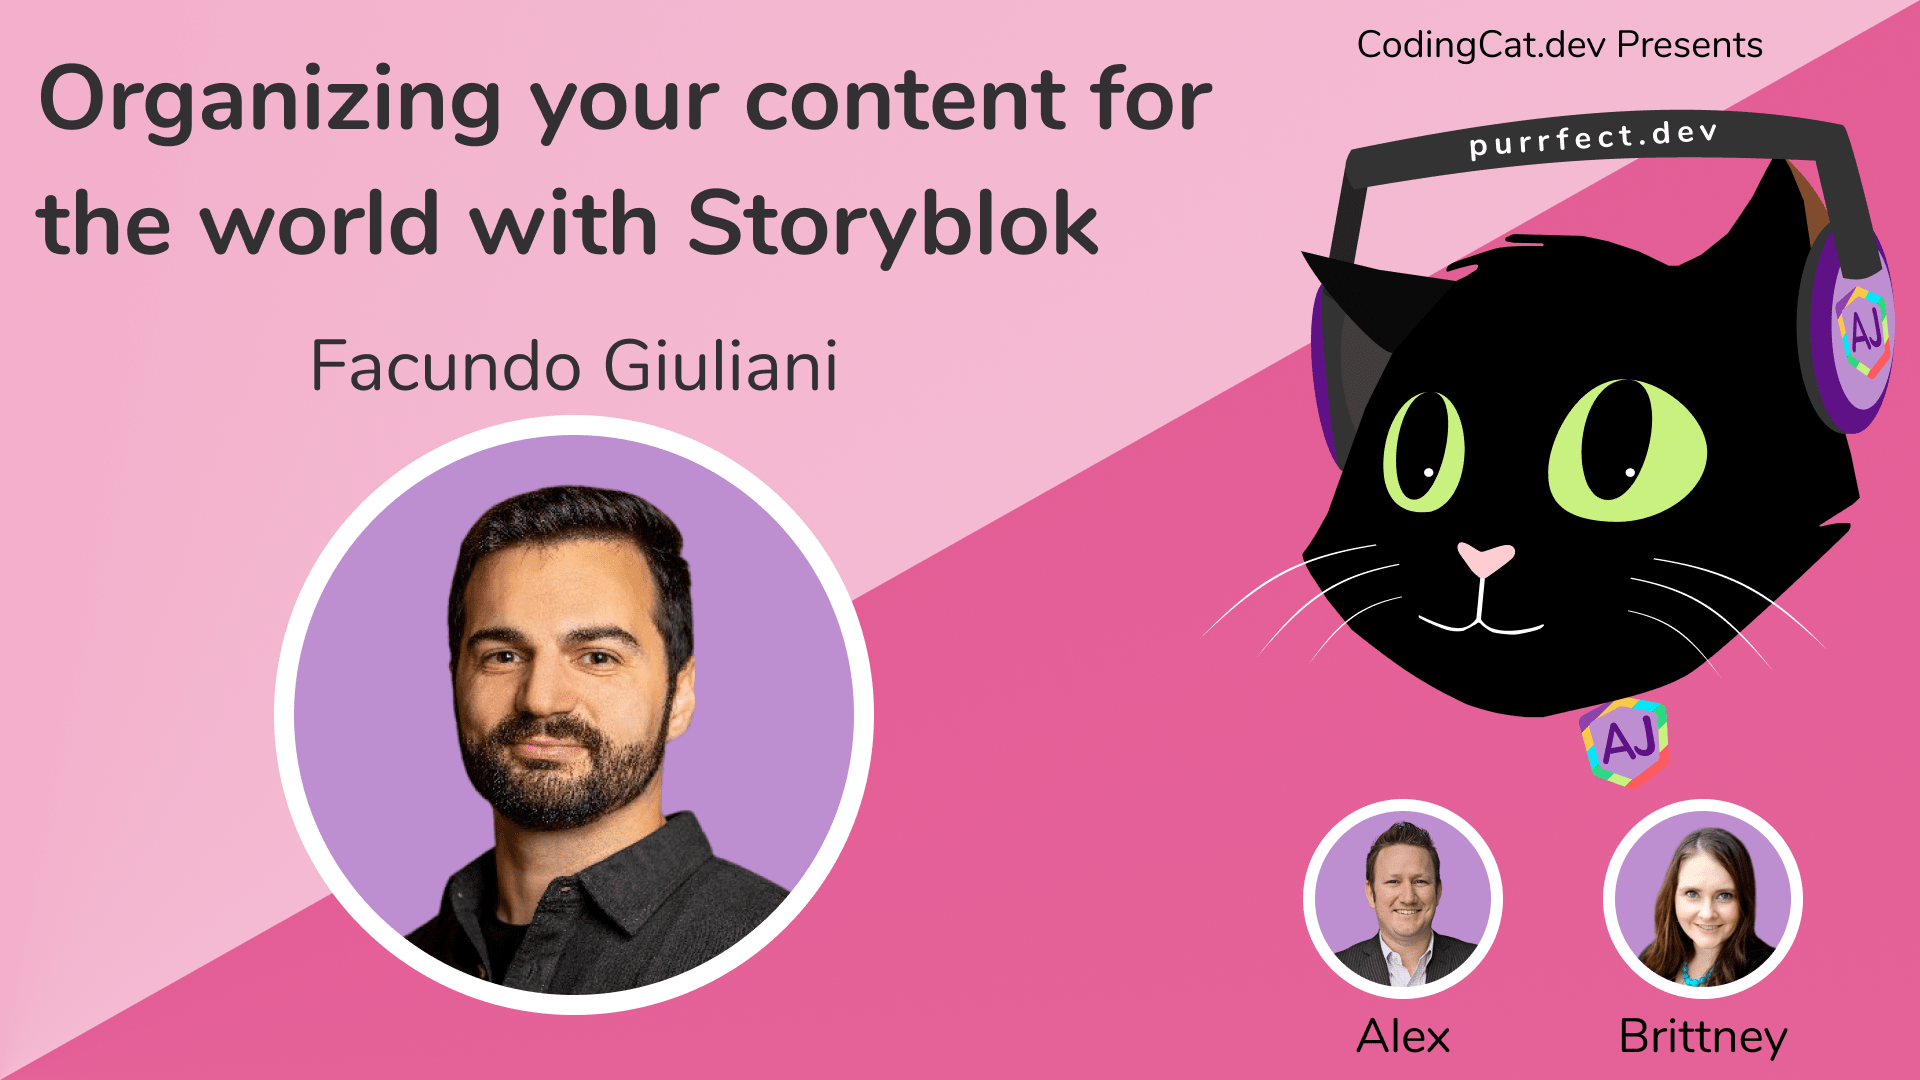 1.39 - Organizing your content for the world with Storyblok